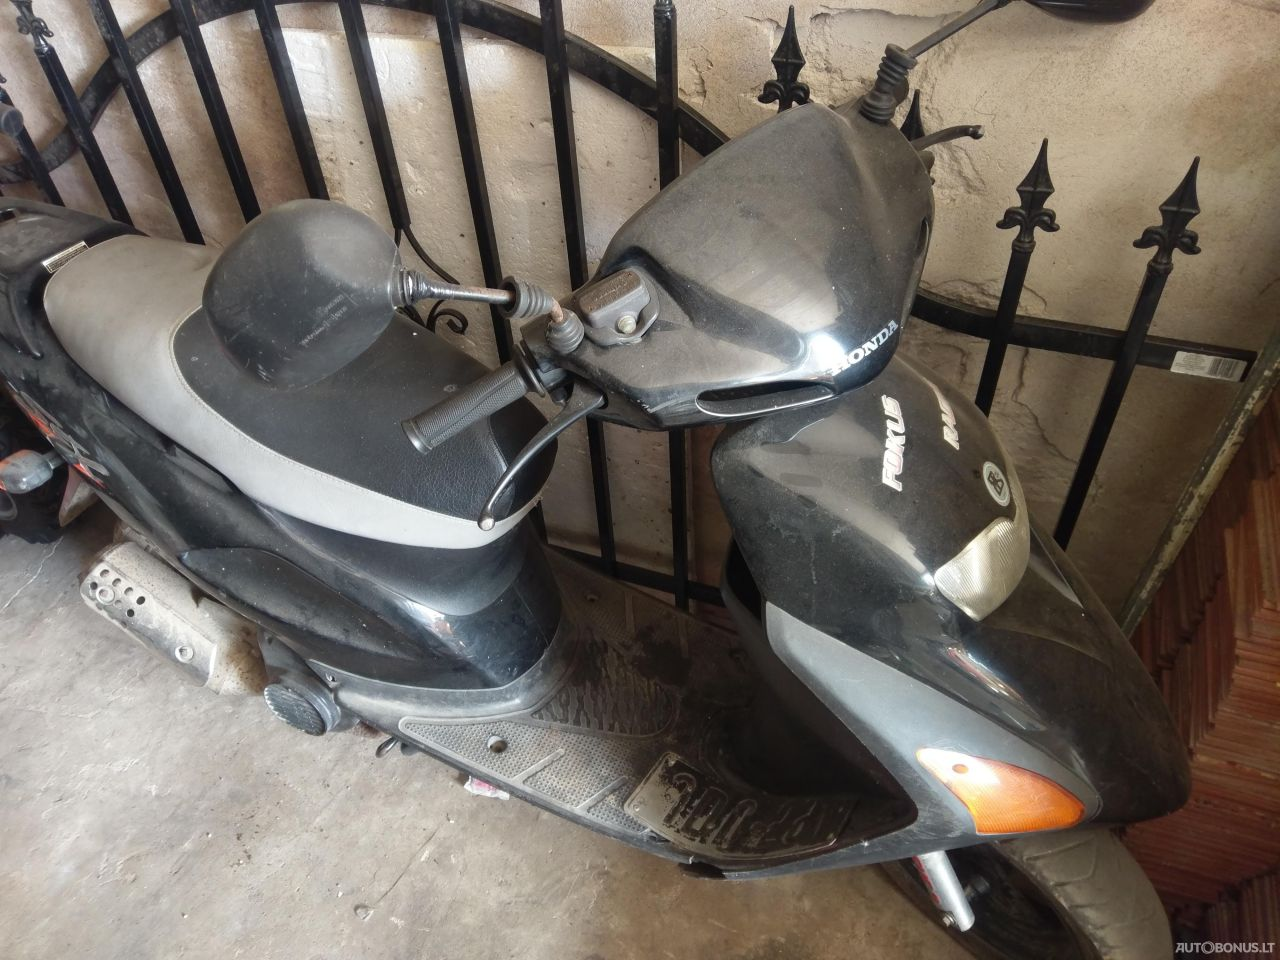 Honda STX, Moped/Motor-scooter